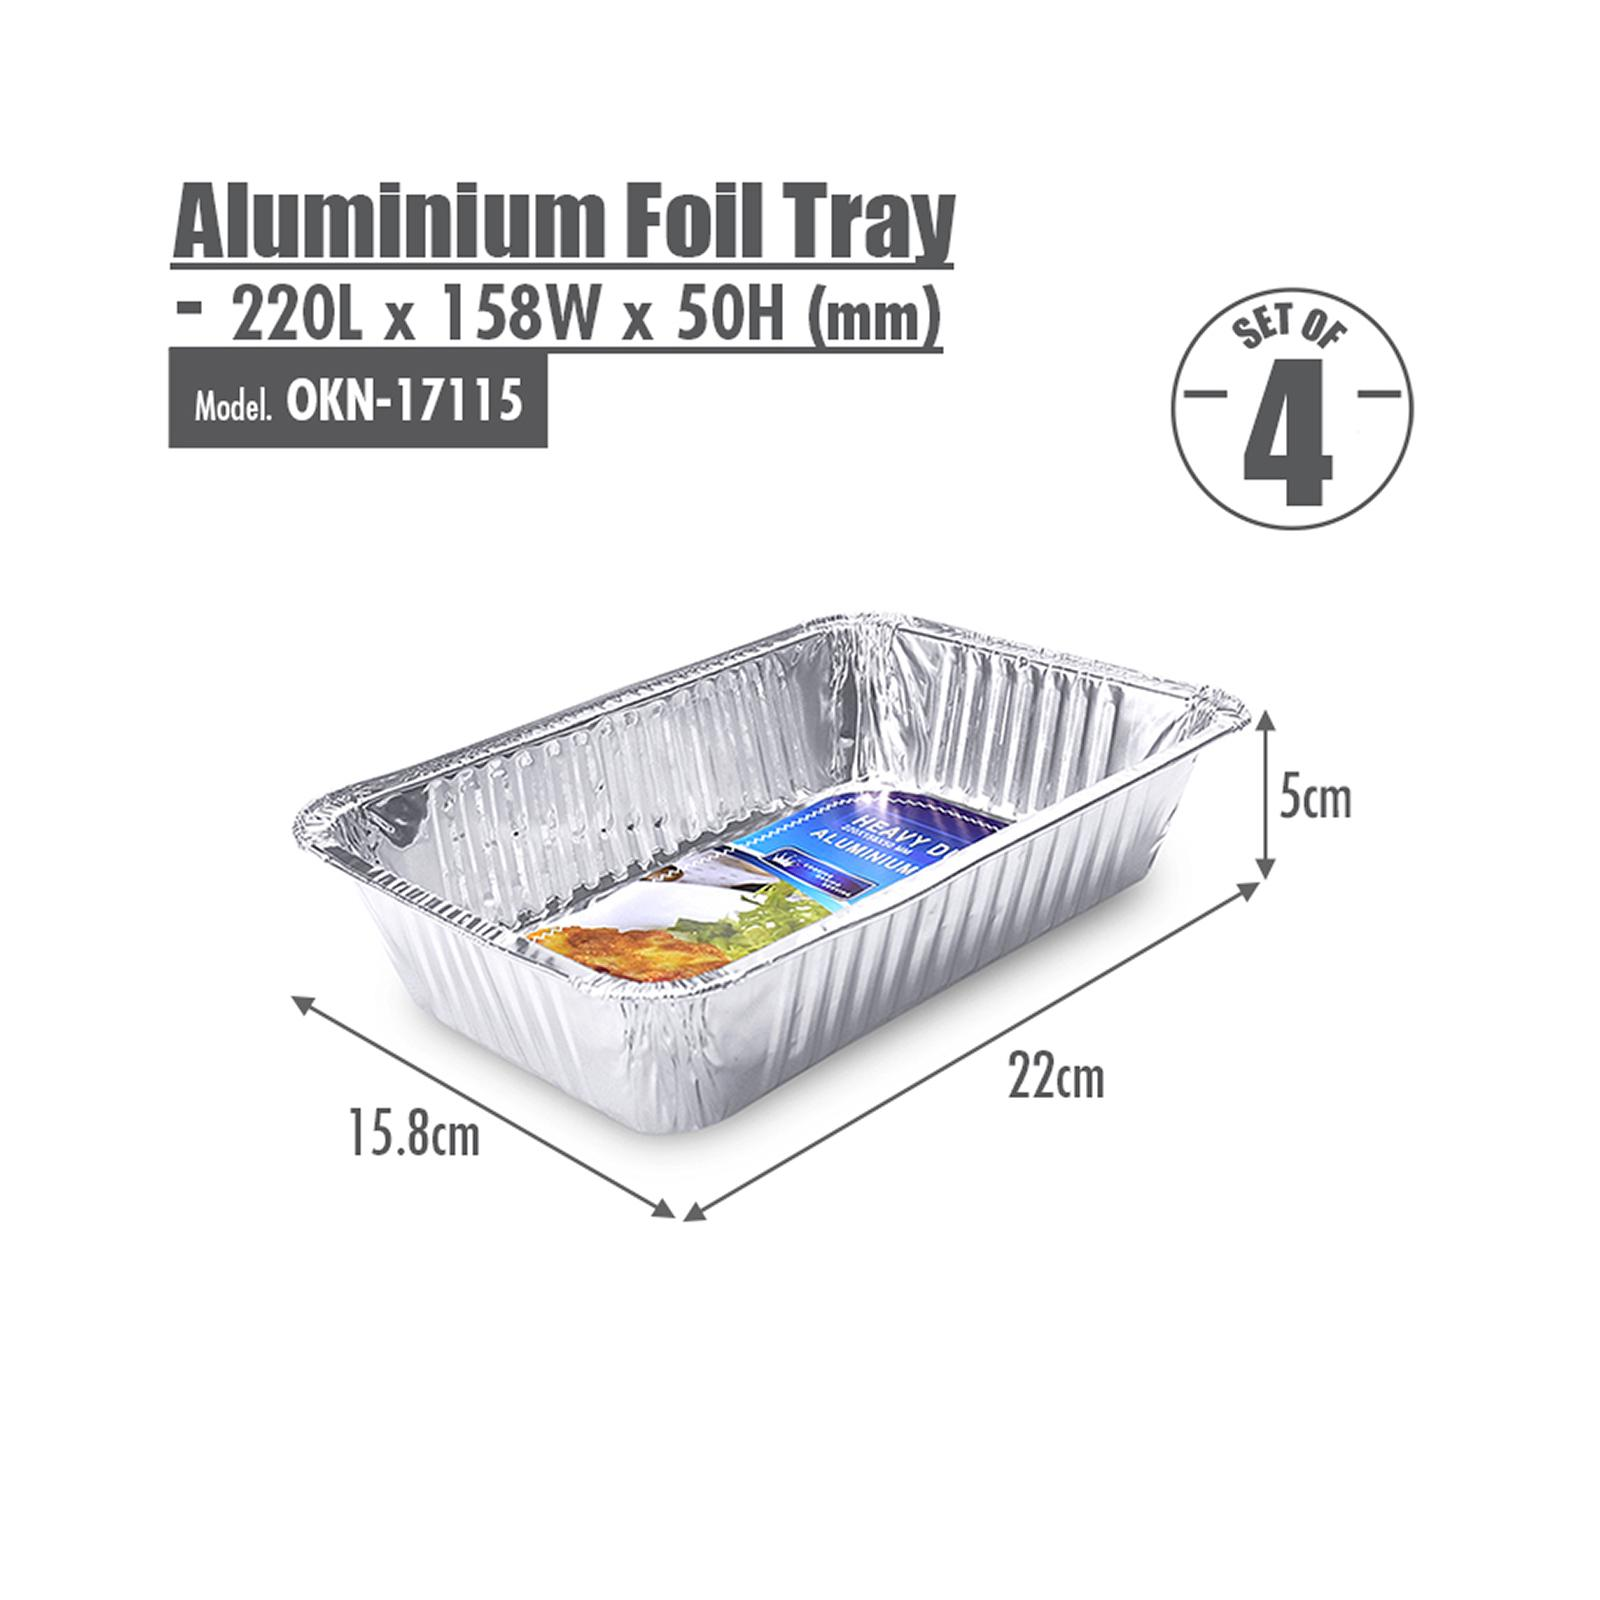 HOUZE Aluminium Foil Tray - Set of 4